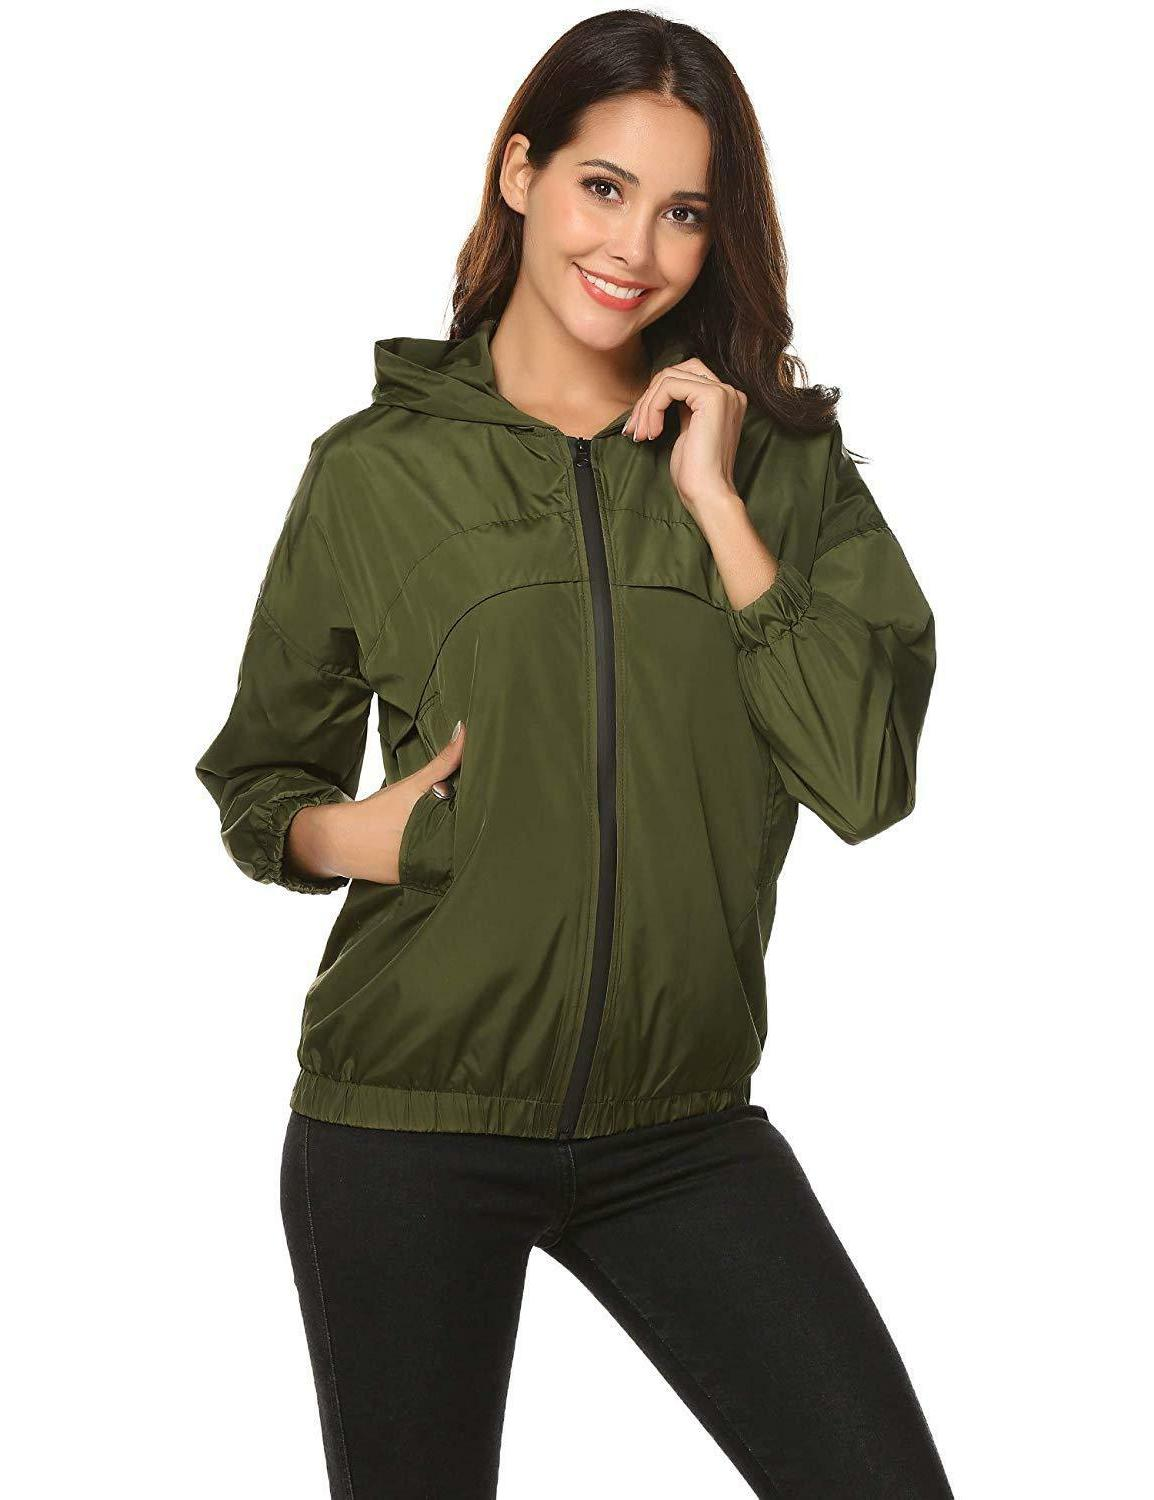 ZHENWEI Lightweight Jacket Casual Zip Rain